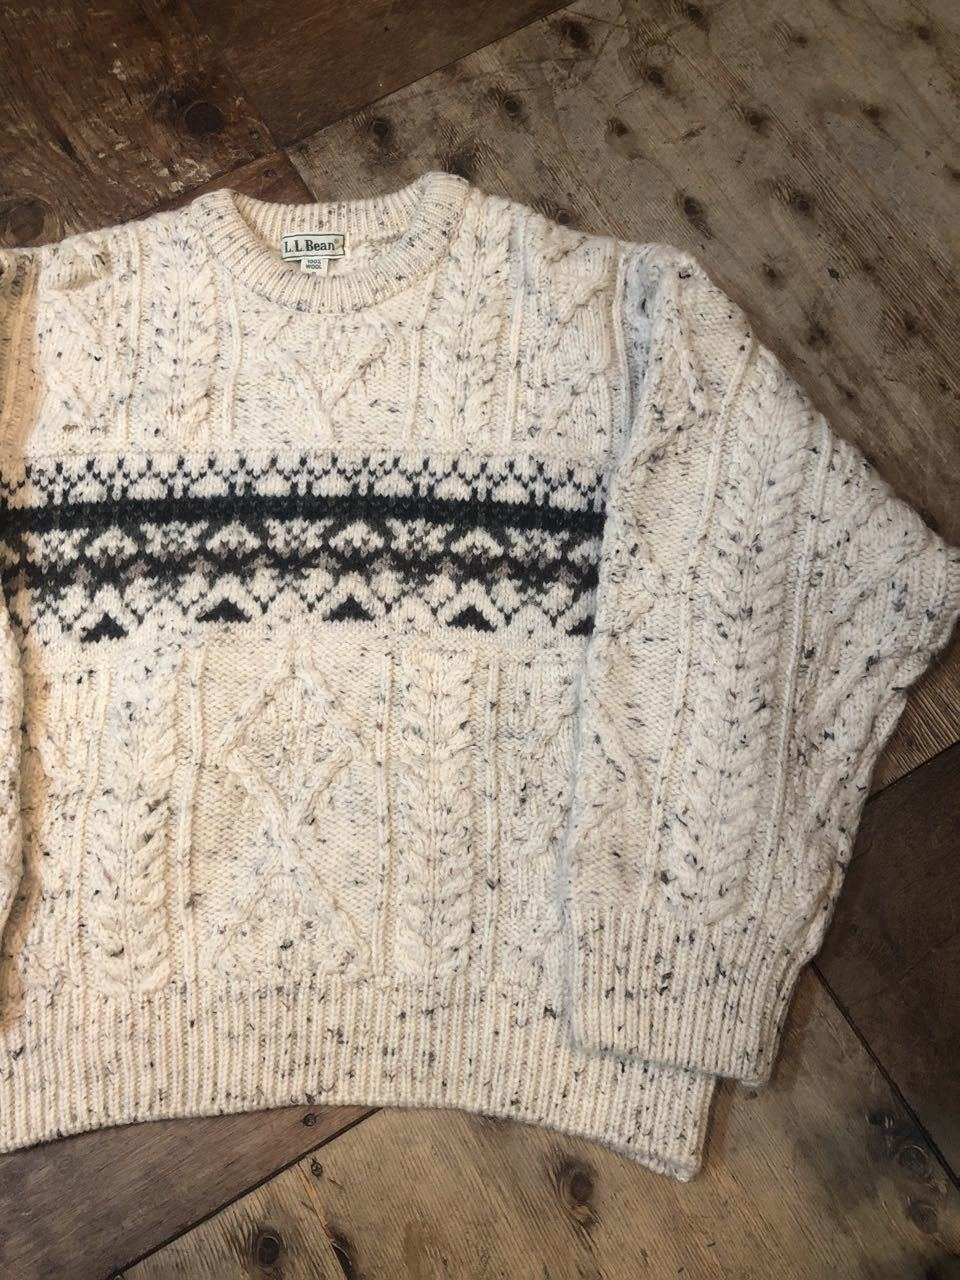 11月16日(土)入荷!MADE IN IRELAND L.L Bean all wool sweater!!_c0144020_13574030.jpg